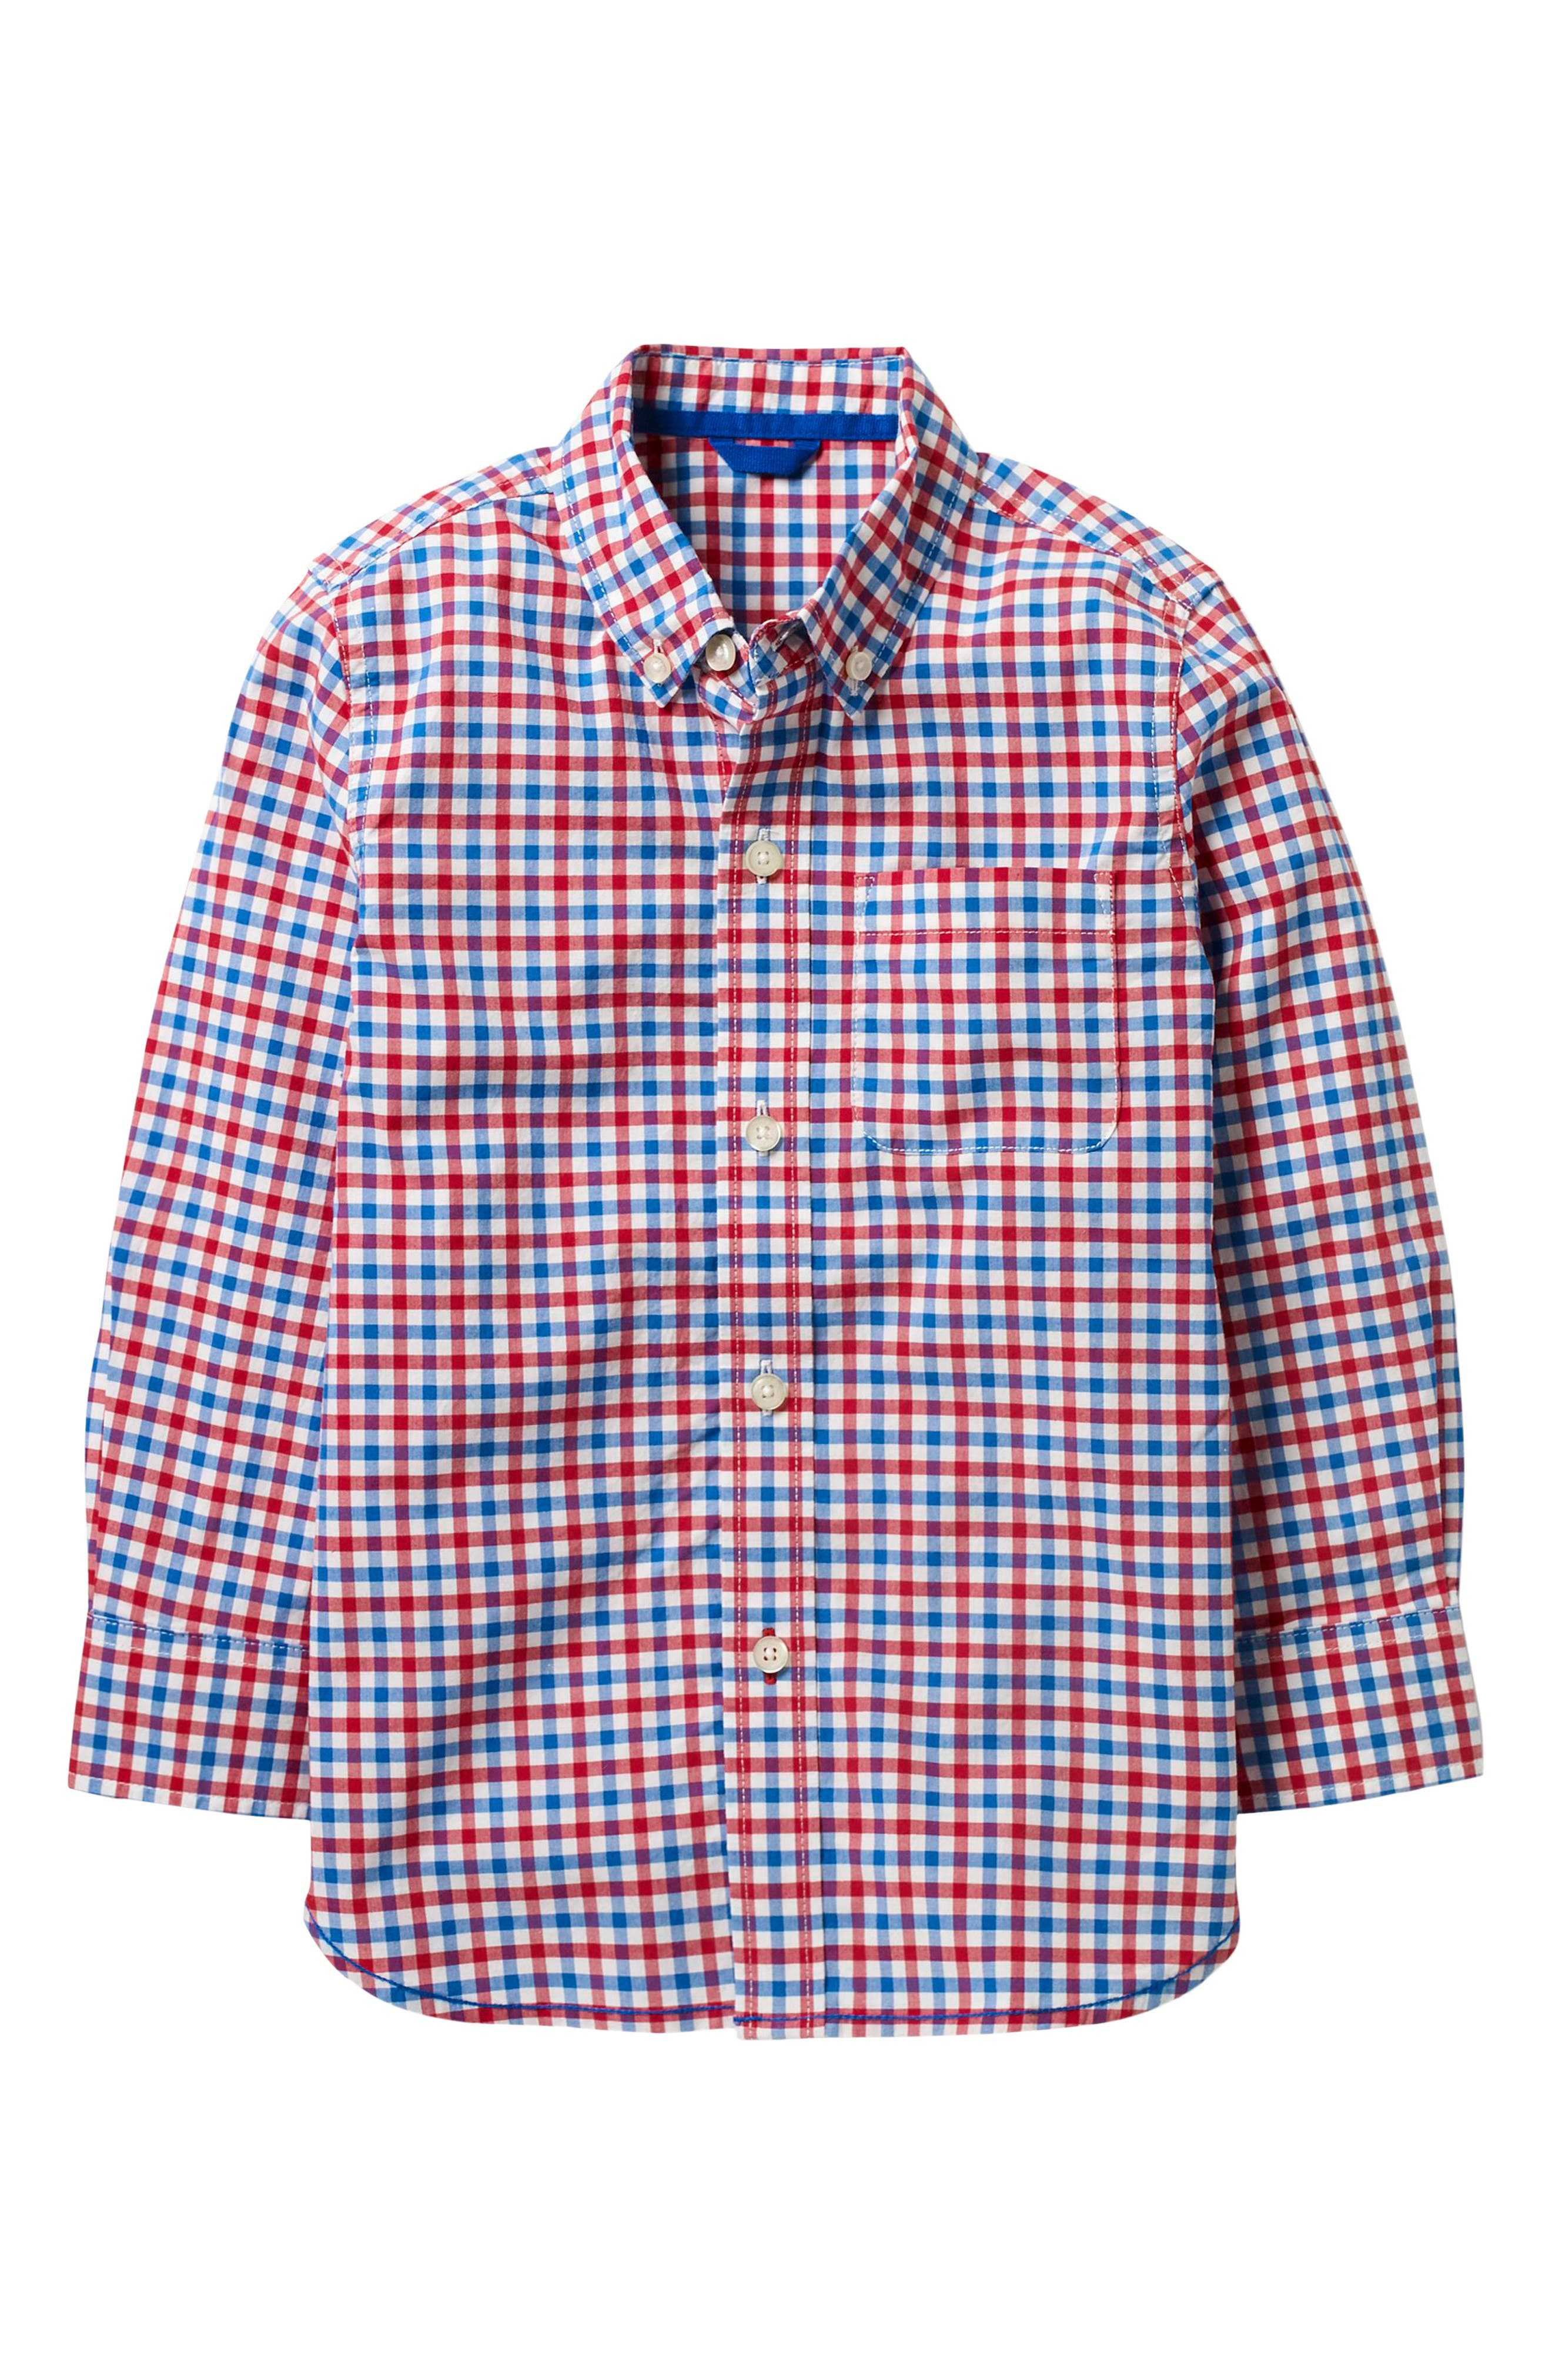 Laundered Gingham Woven Shirt,                         Main,                         color, 600